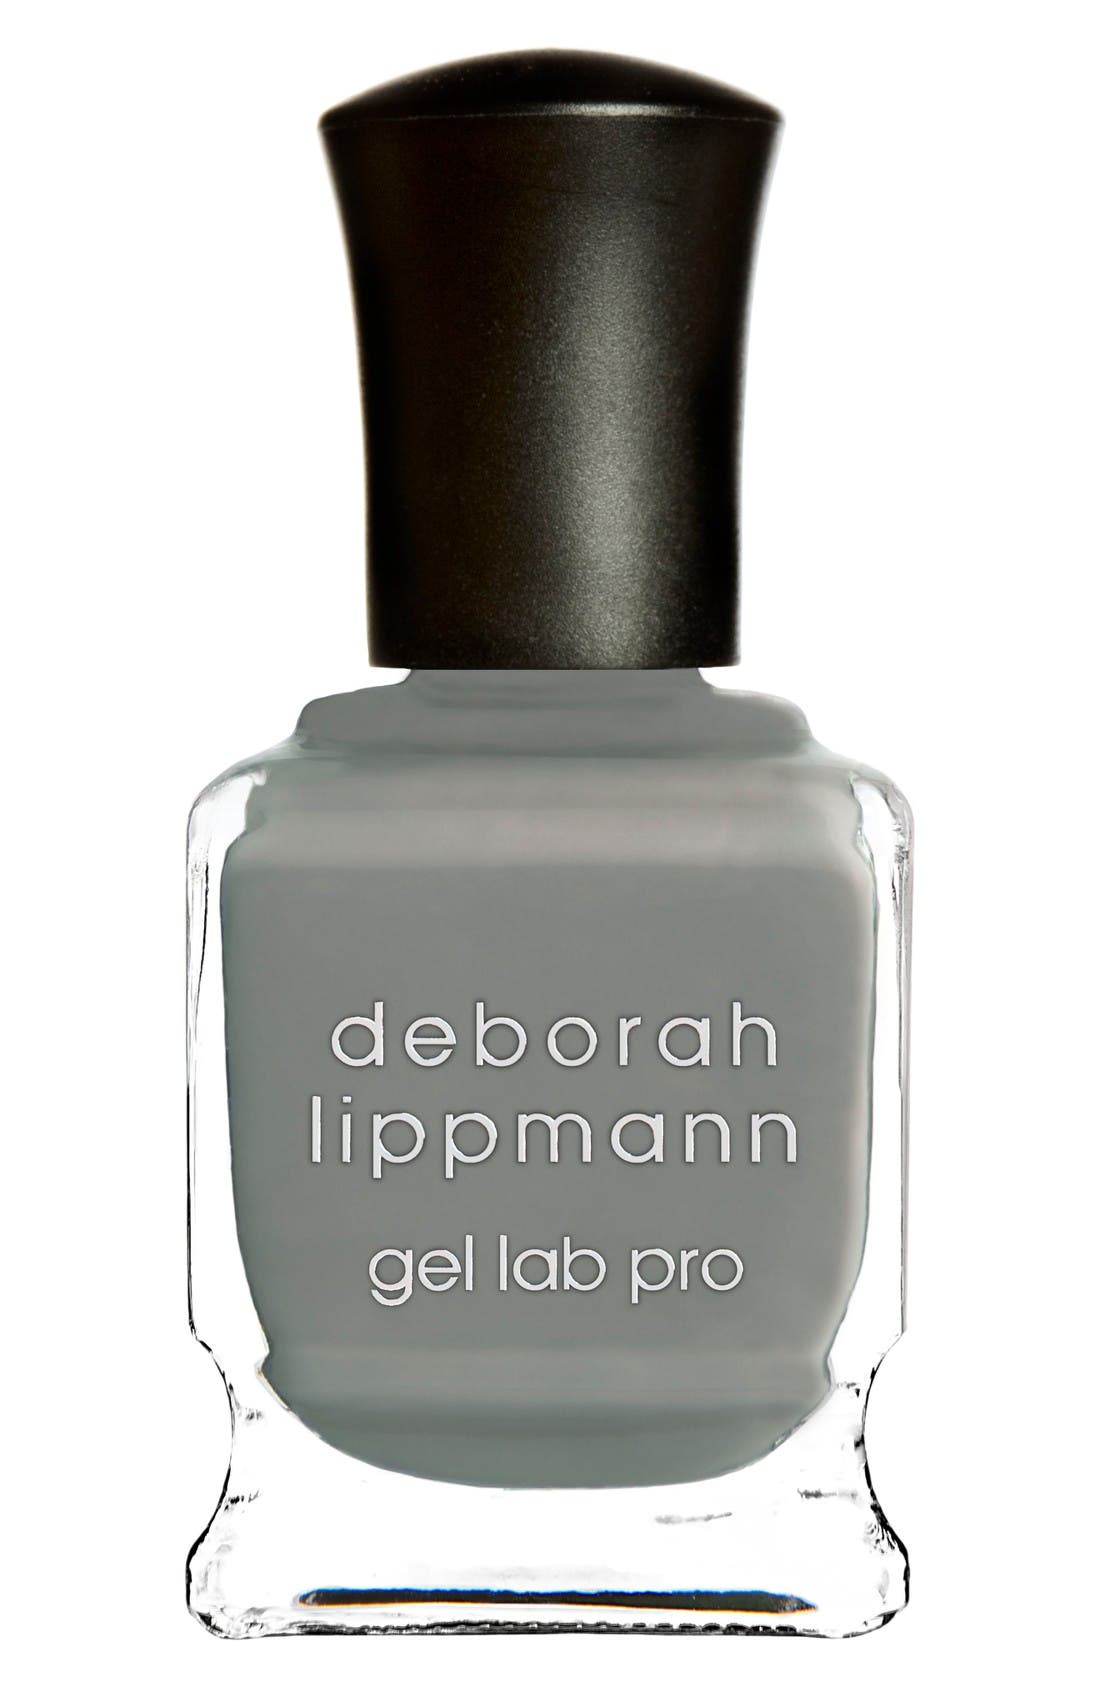 Alternate Image 1 Selected - Deborah Lippmann Gel Lab Pro Nail Color (Nordstrom Exclusive)